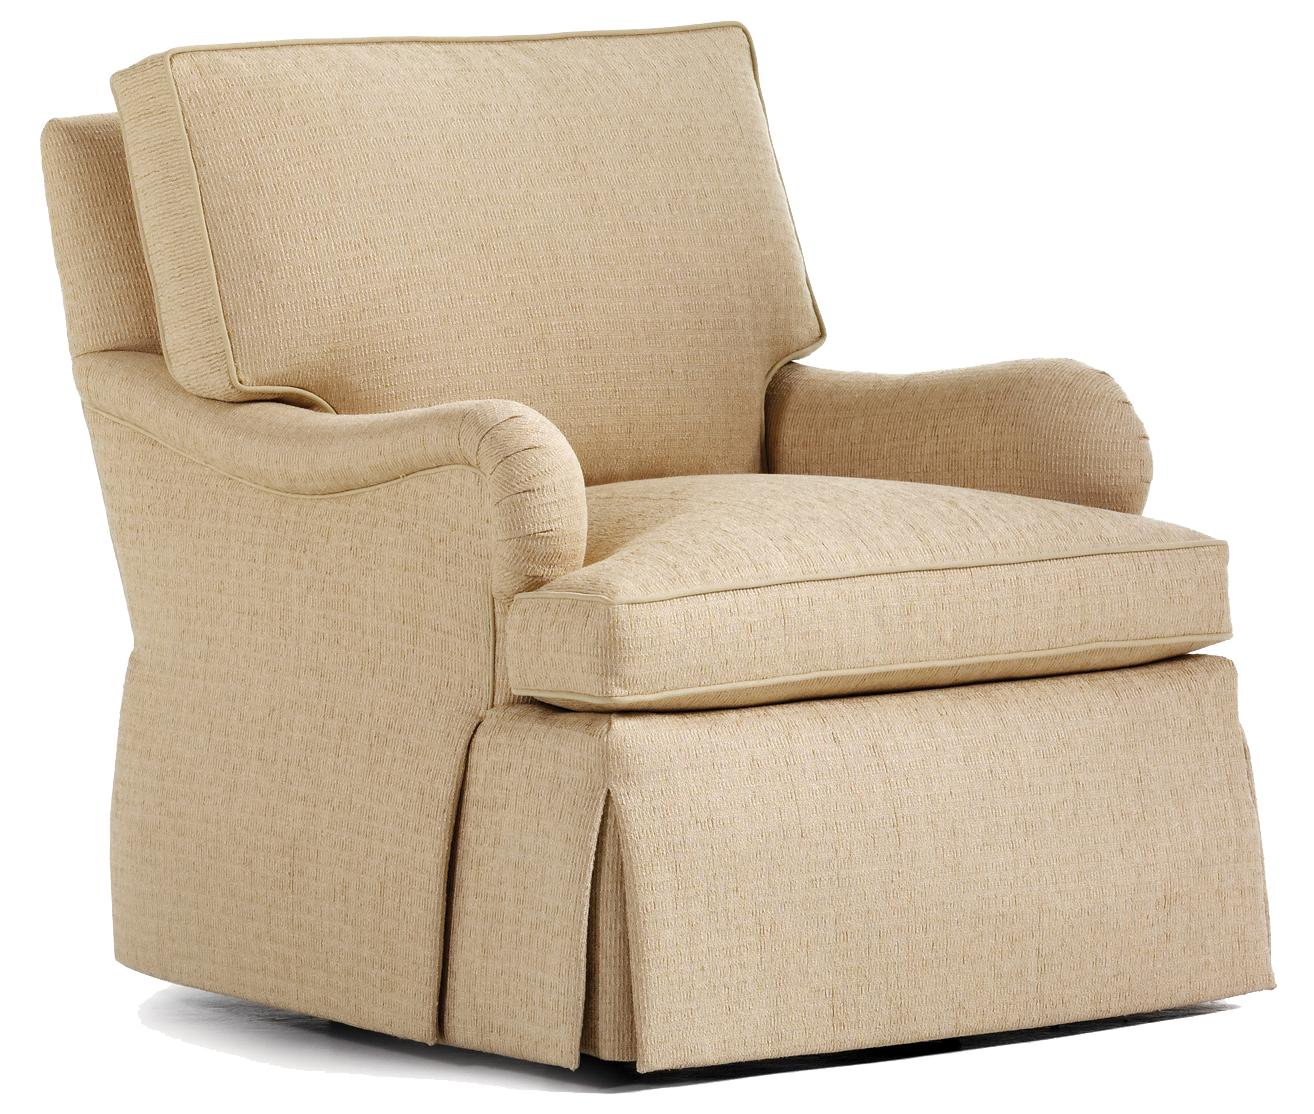 Fine Upholstered Accents Oliver Swivel Rocker    by Jessica Charles at Sprintz Furniture